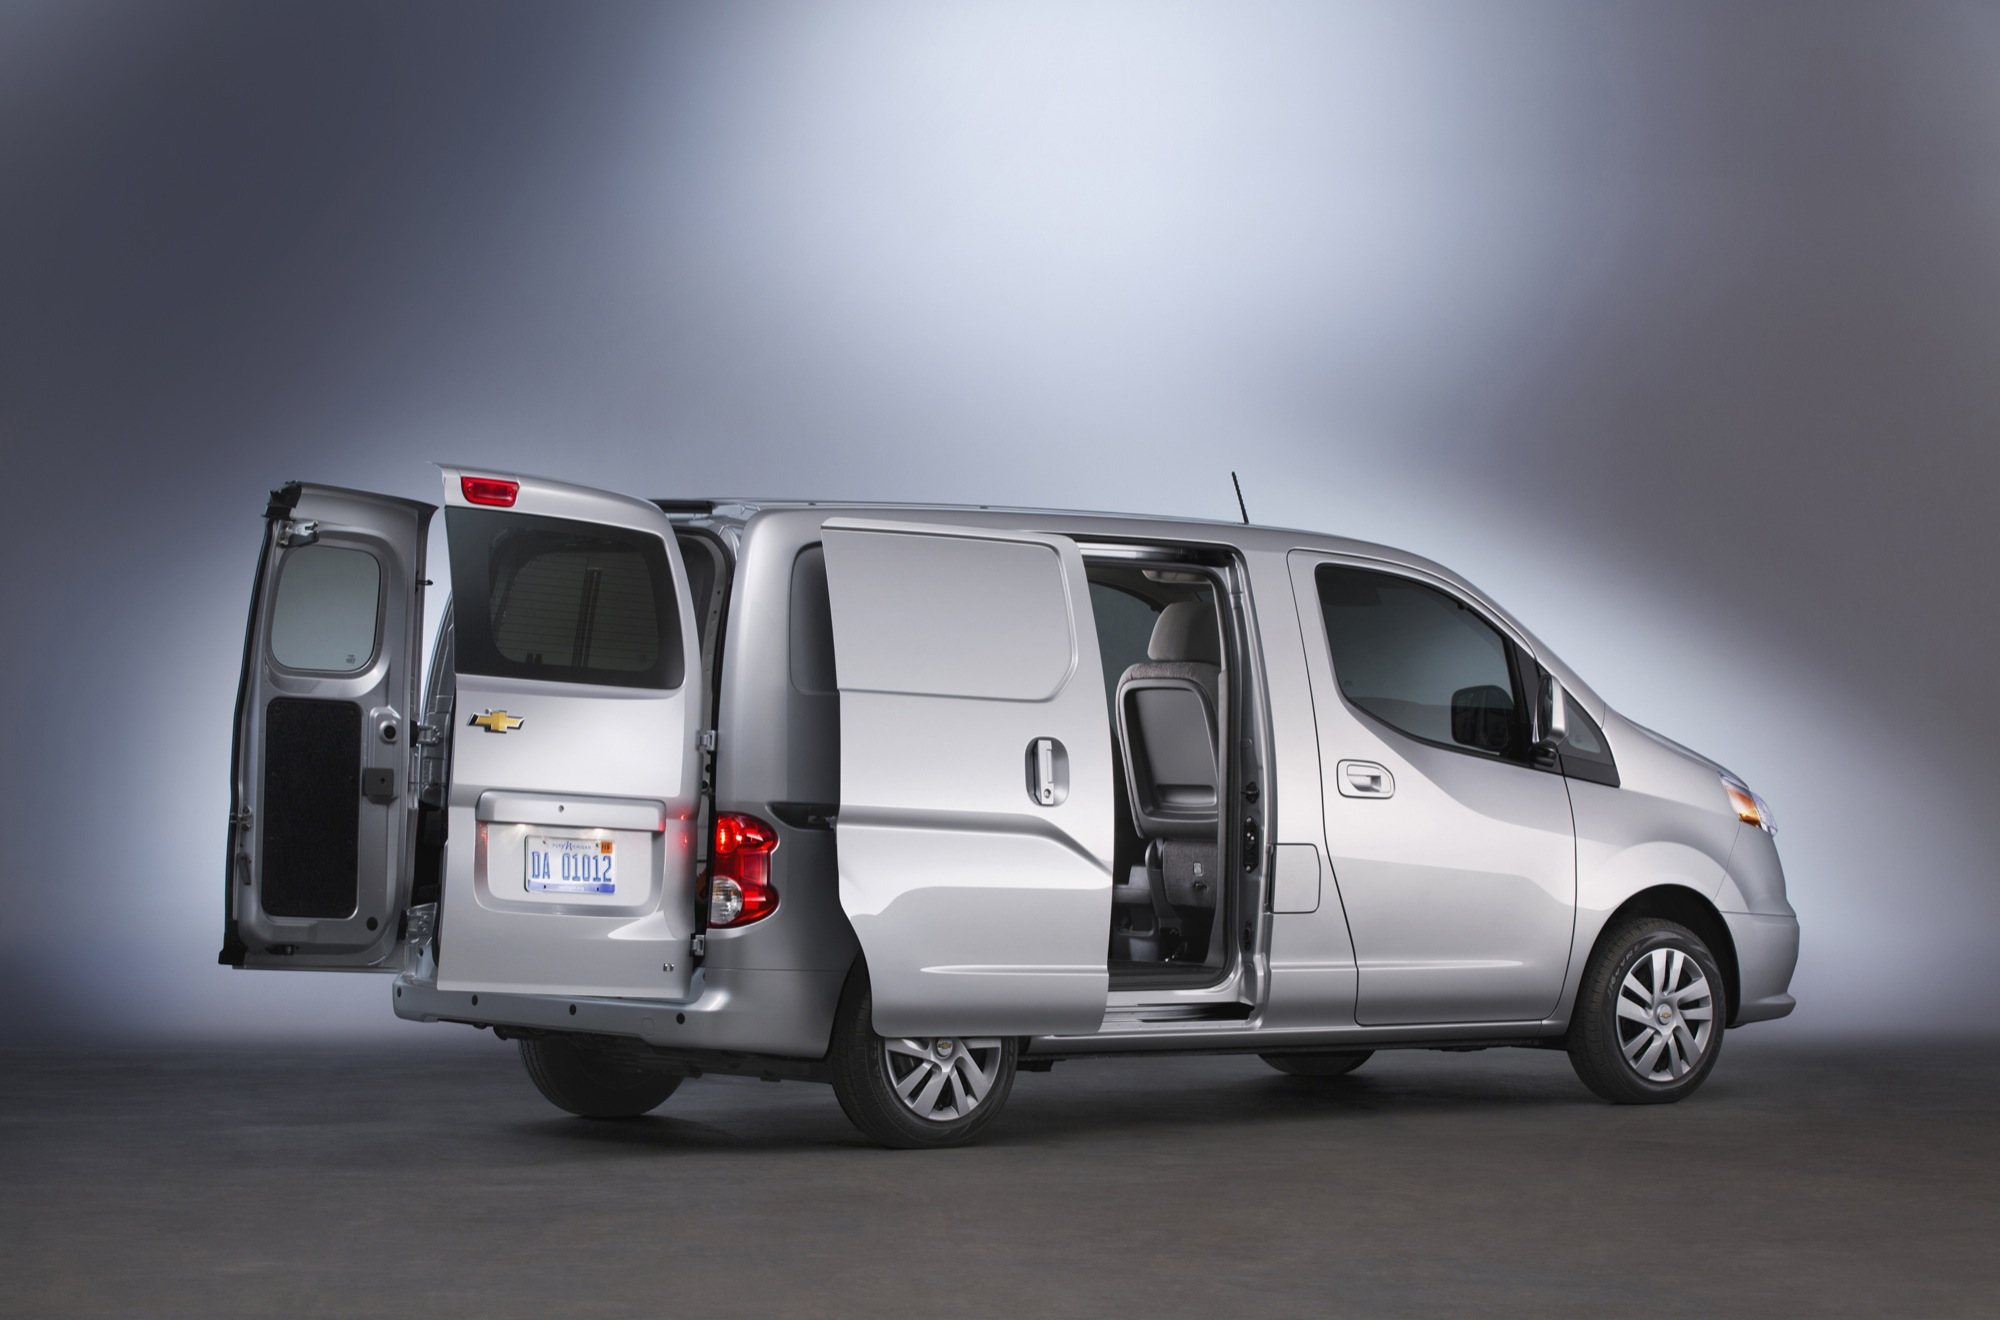 2015 Chevrolet City Express #4